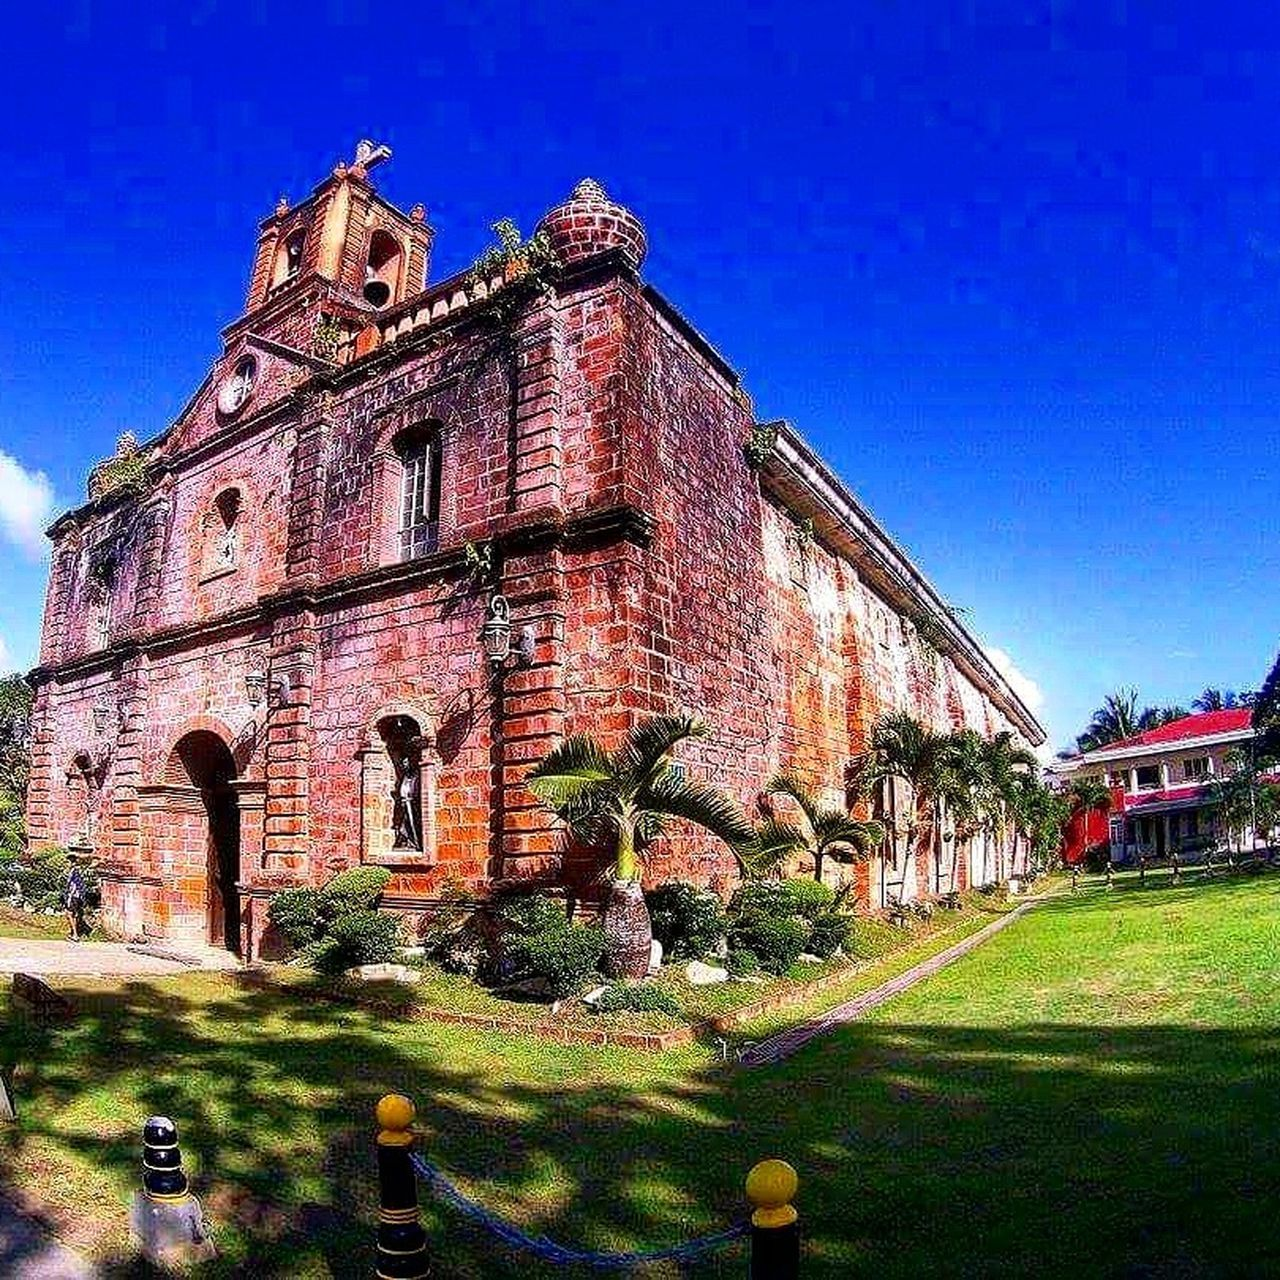 The red Church of Caramoan, CamSur, Philippines, Stmichaelthearchangel Building Exterior History 16thcentury Church Redbricks Redbrickschurch Byahenitinoki Caramoan Camsur Bicol Travelph TravelPhilippines Grass Outdoors